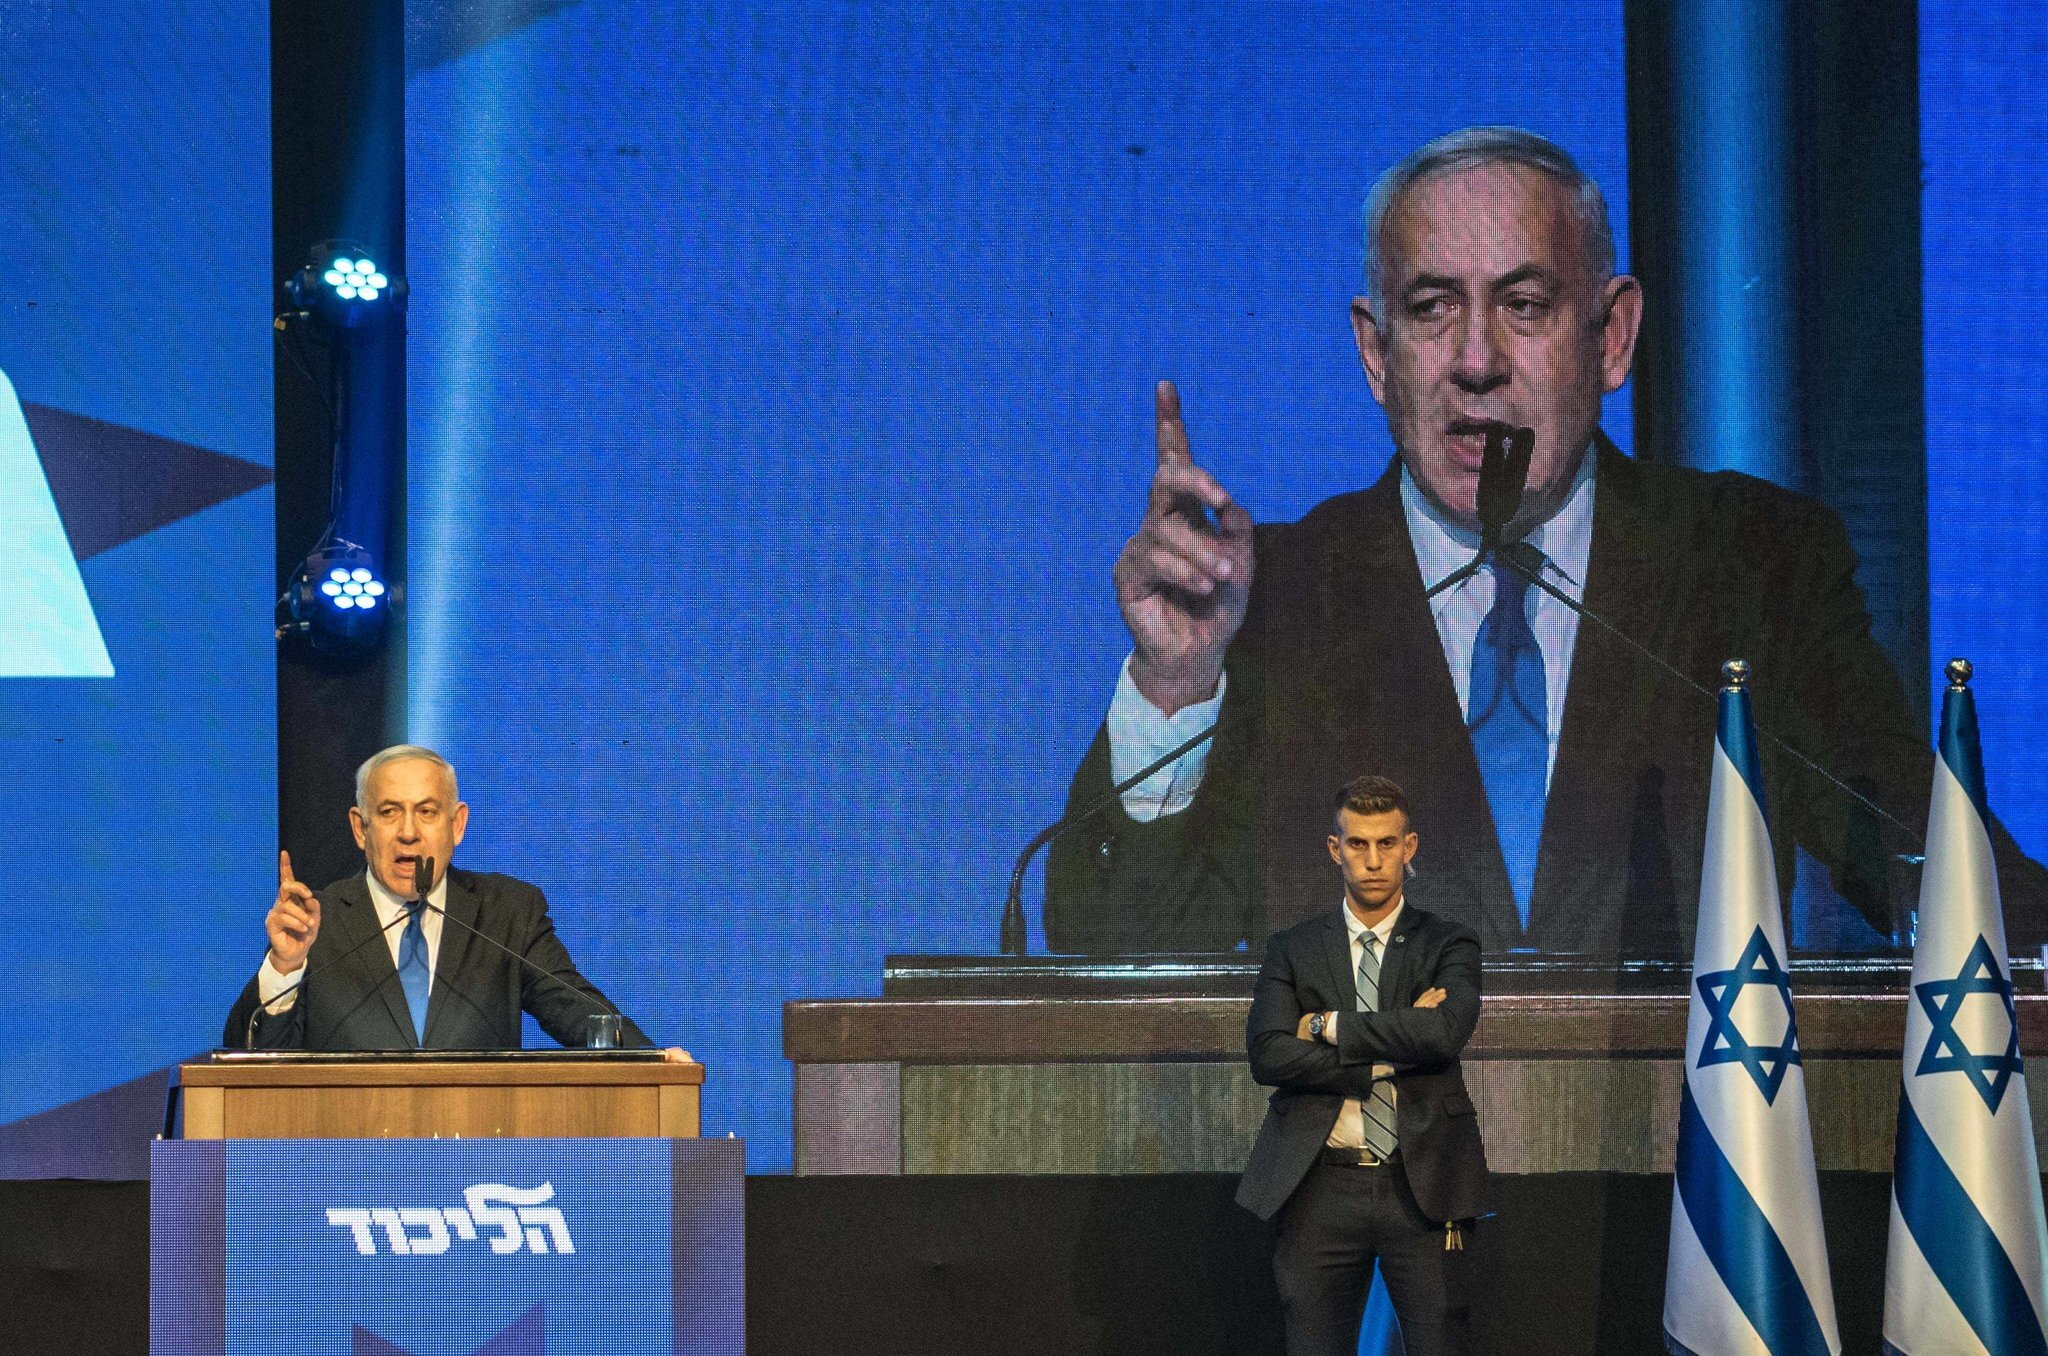 Prime Minister Benjamin Netanyahu of Israel addressing supporters at his Likud party's campaign headquarters early Wednesday. Credit Sergey Ponomarev for The New York Times